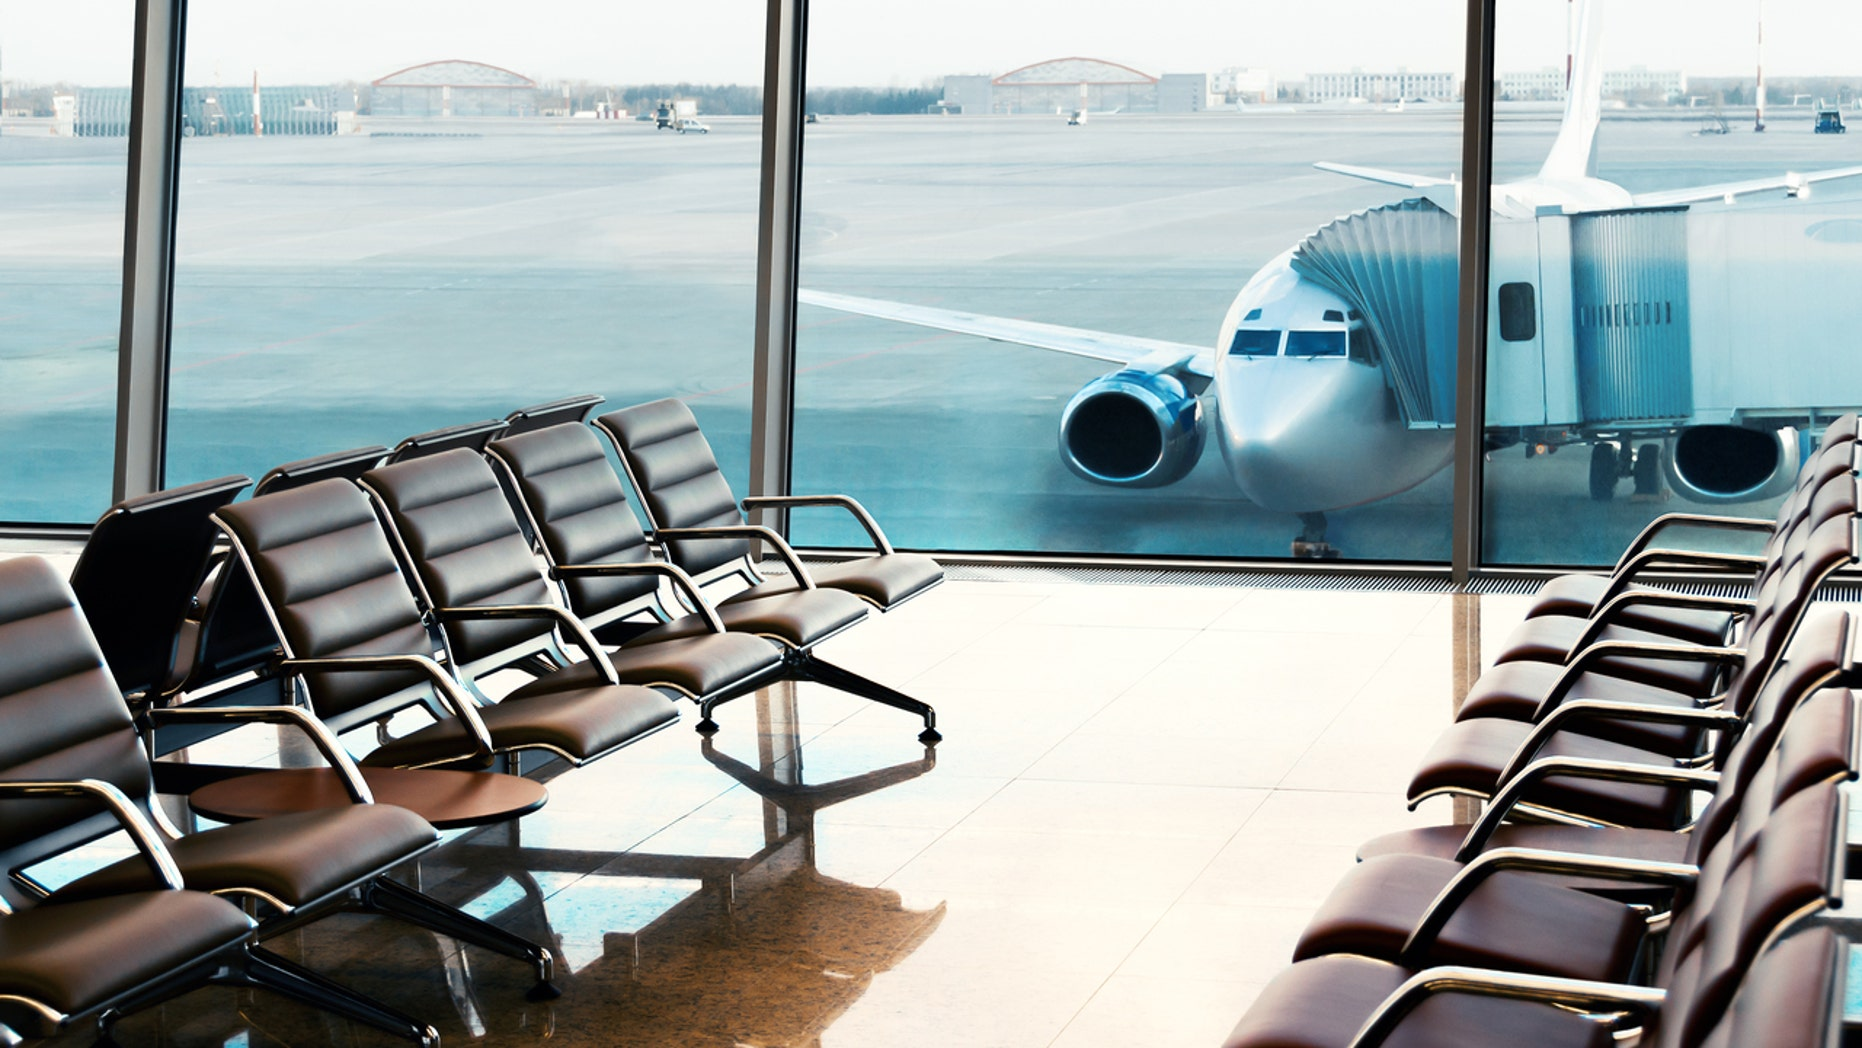 """An Arizona airport is losing some seating after a not so """"shocking"""" bed bug outbreak."""